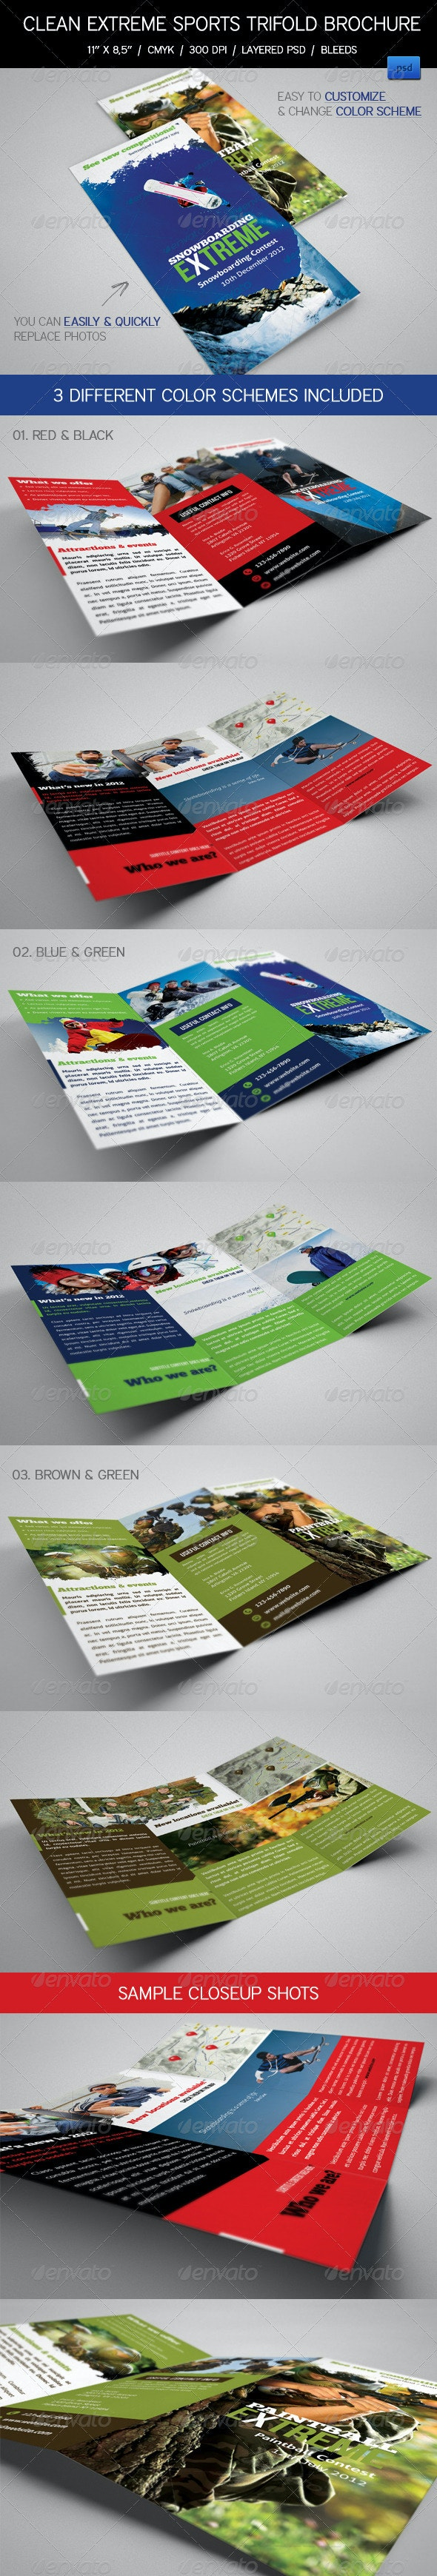 Extreme Sports Event Trifold Brochures - Corporate Brochures